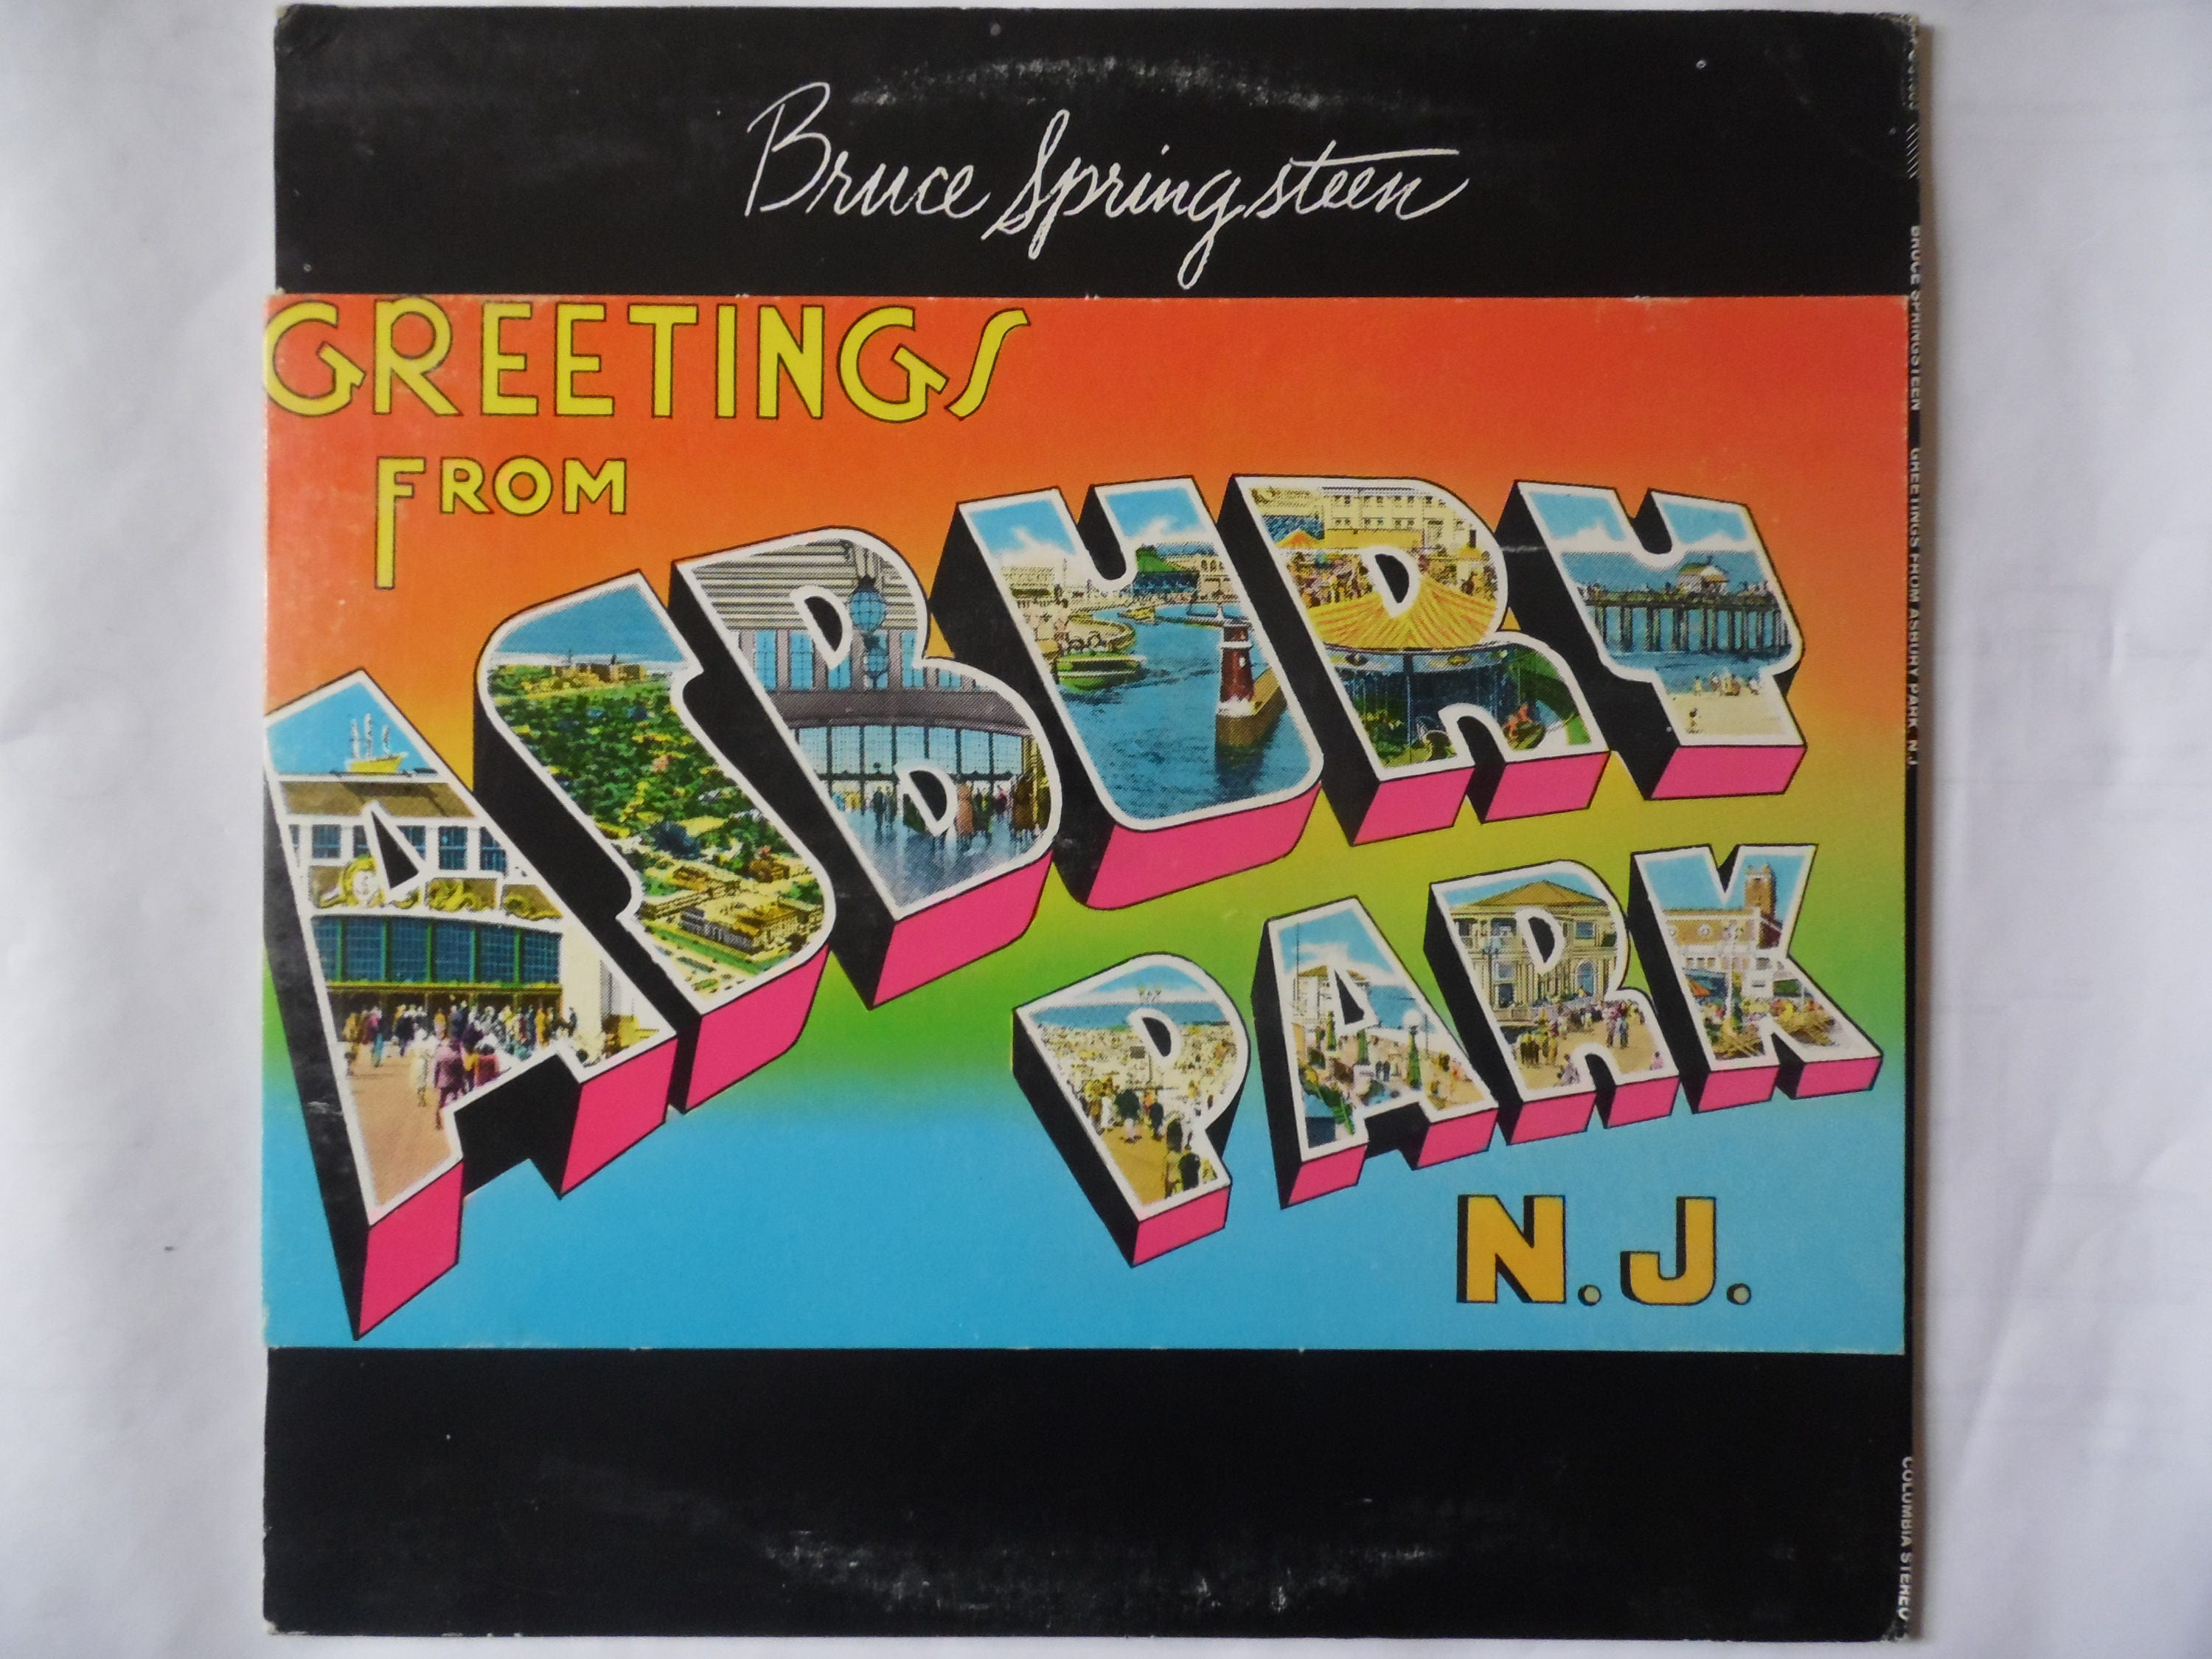 Bruce springsteen greetings from asbury park nj vinyl description greetings from asbury park from the boss bruce springsteen m4hsunfo